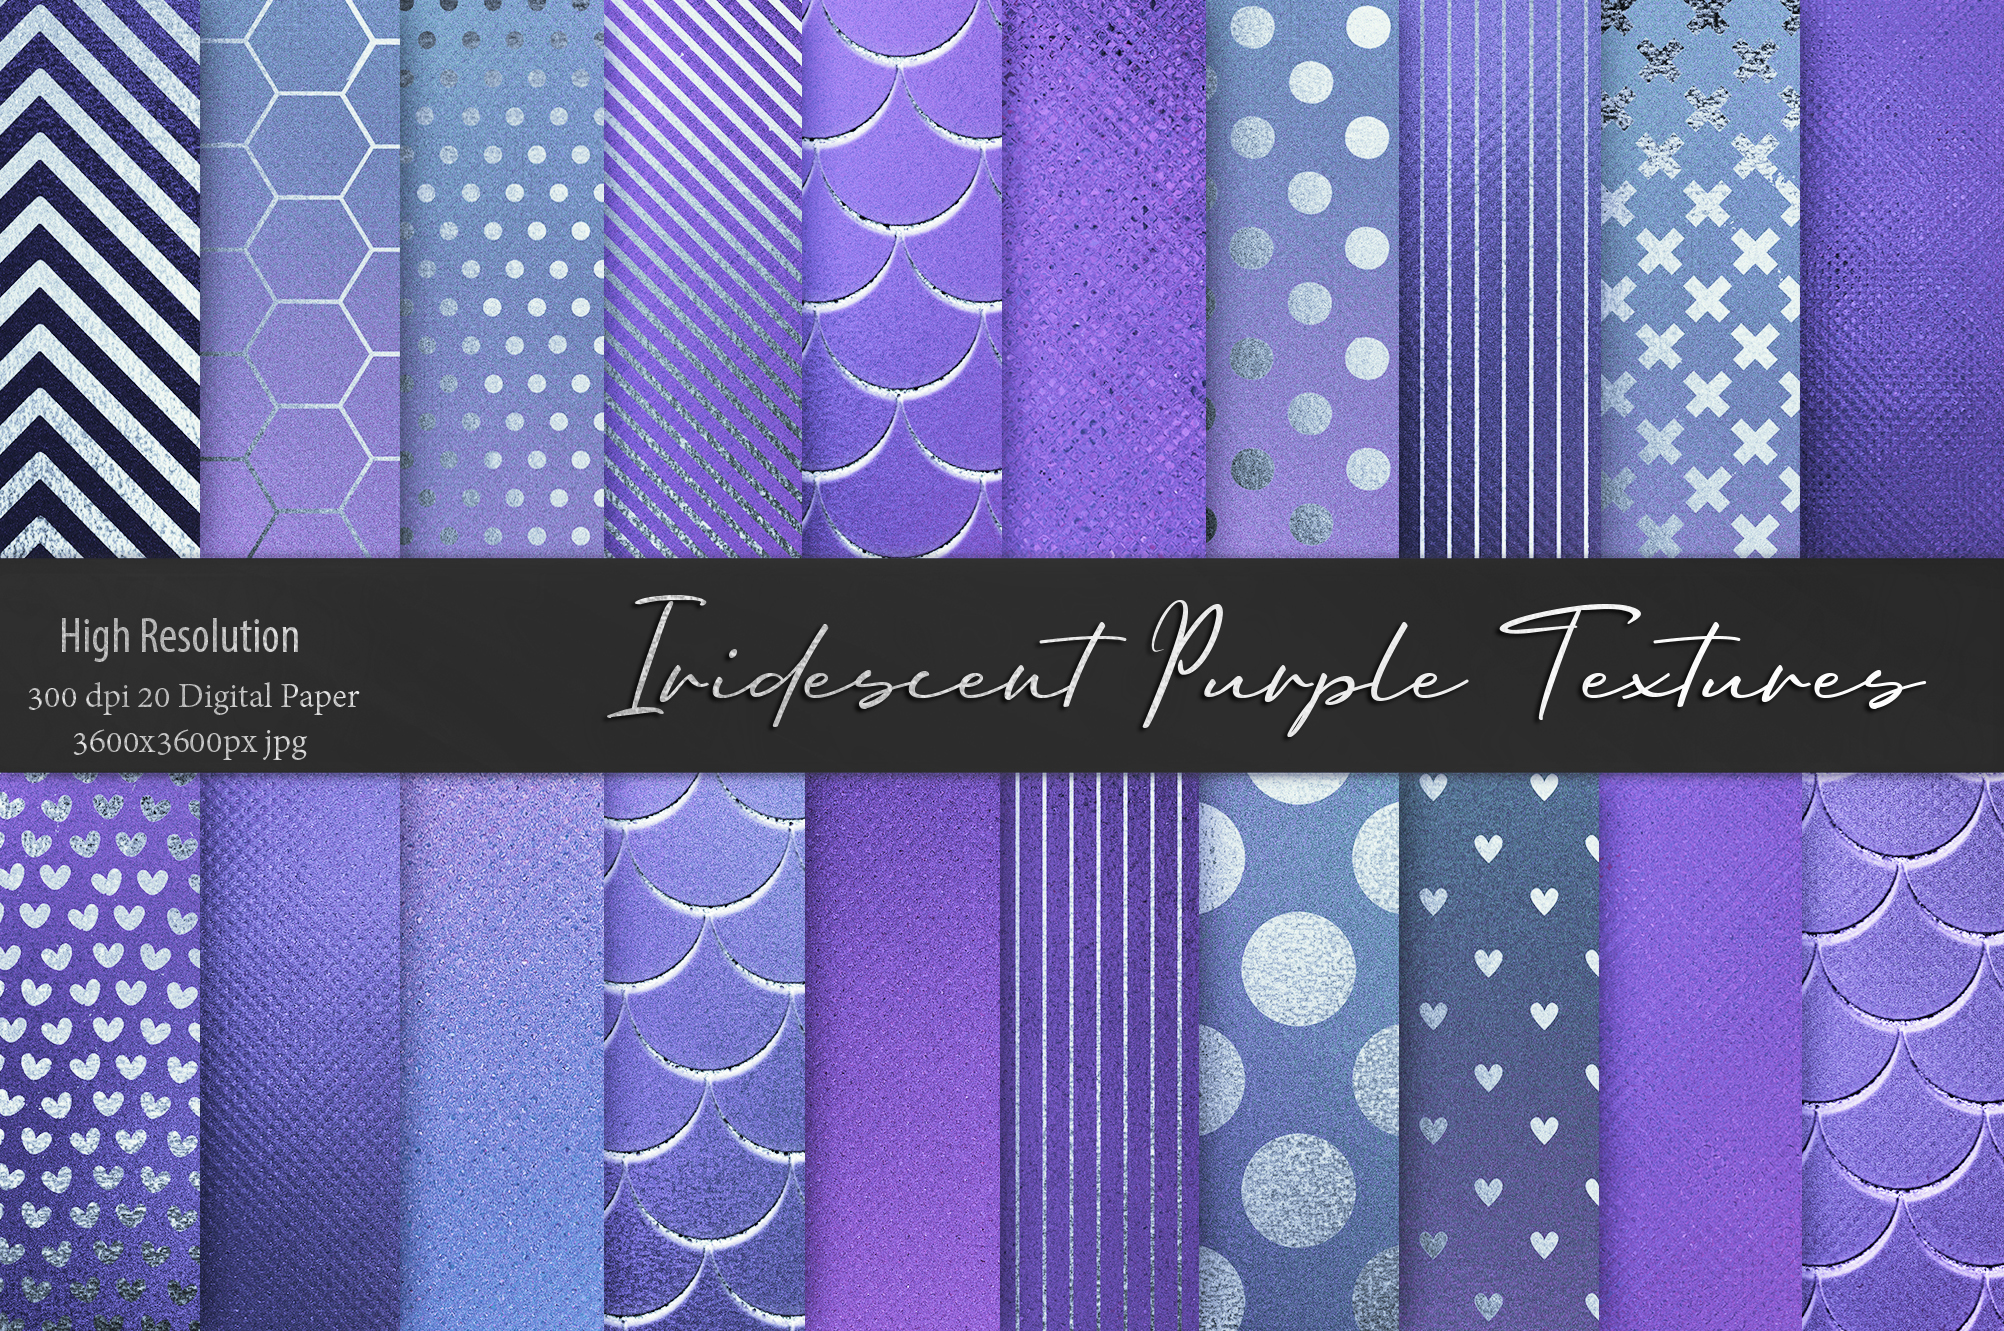 Iridescent Marble Textures BUNDLE example image 9